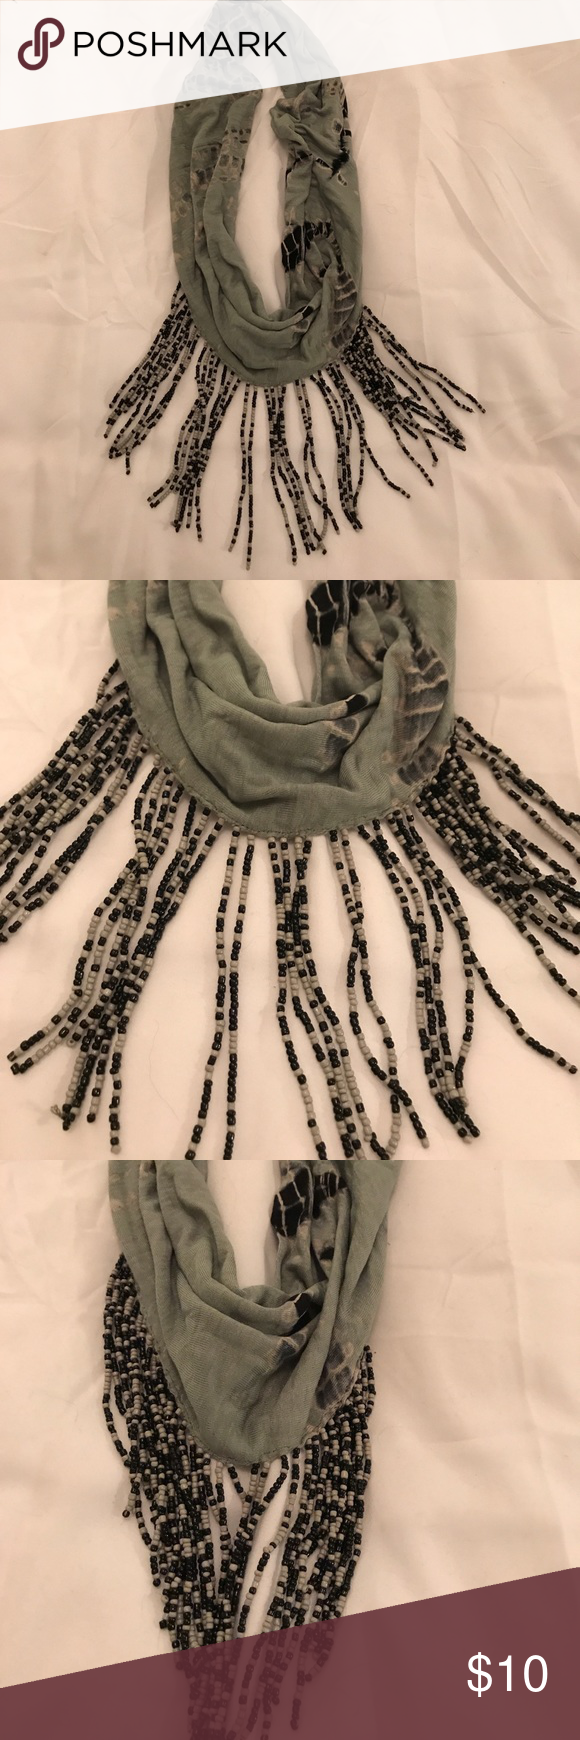 Super cute scarf necklace For looks not for warmth! Jewelry Necklaces